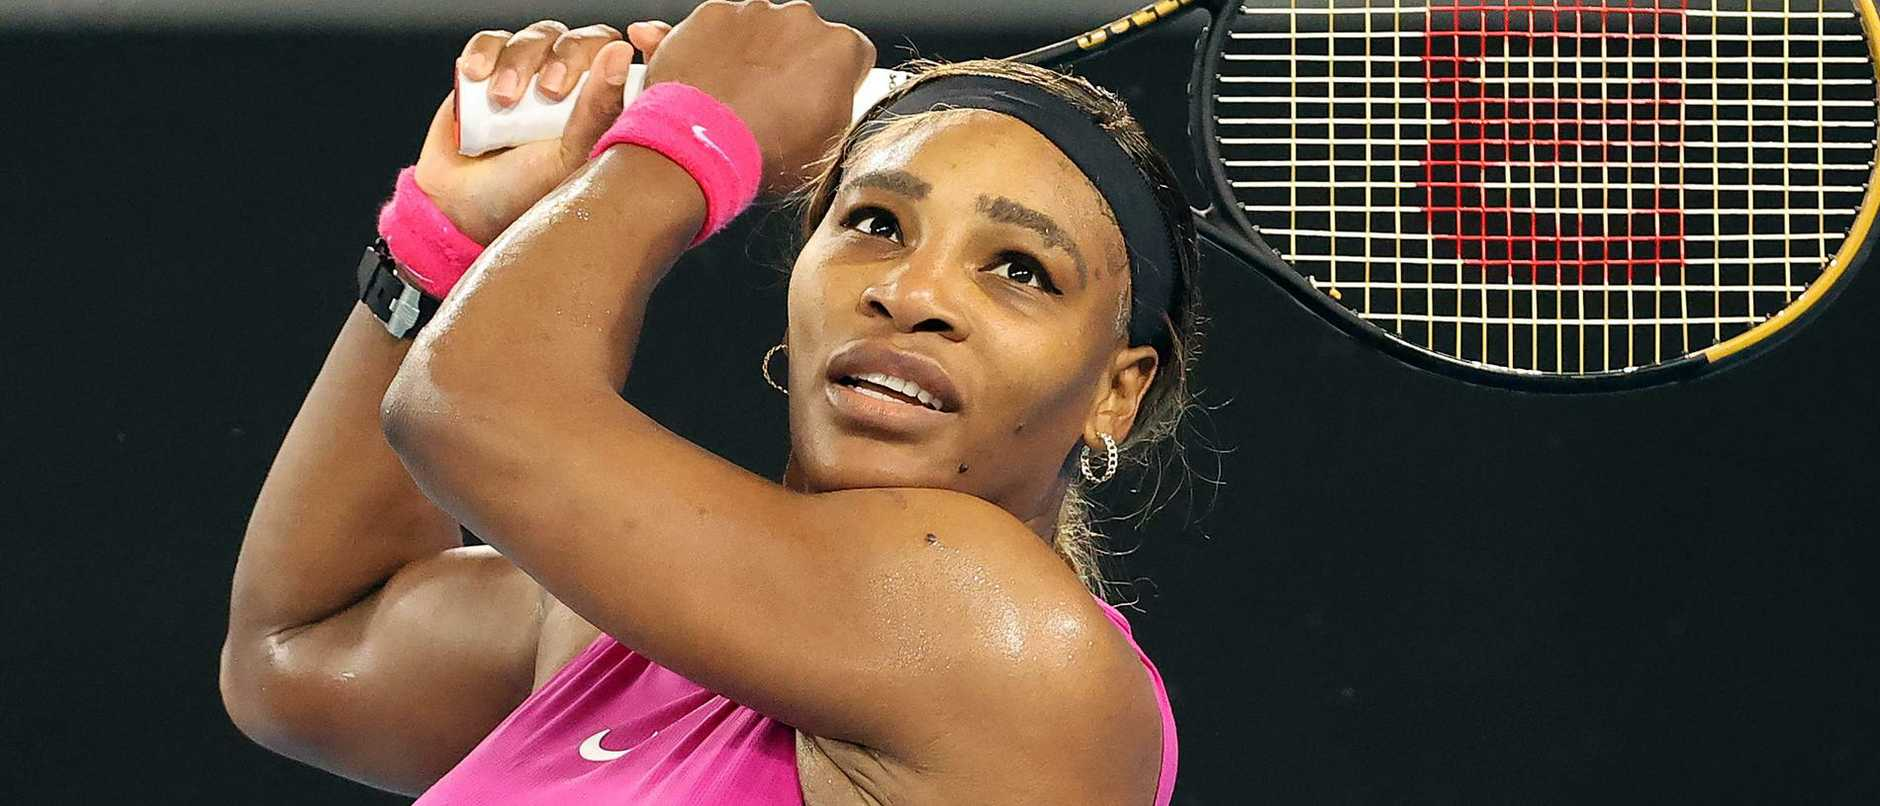 Can Serena rewrite the record books at Aus Open?